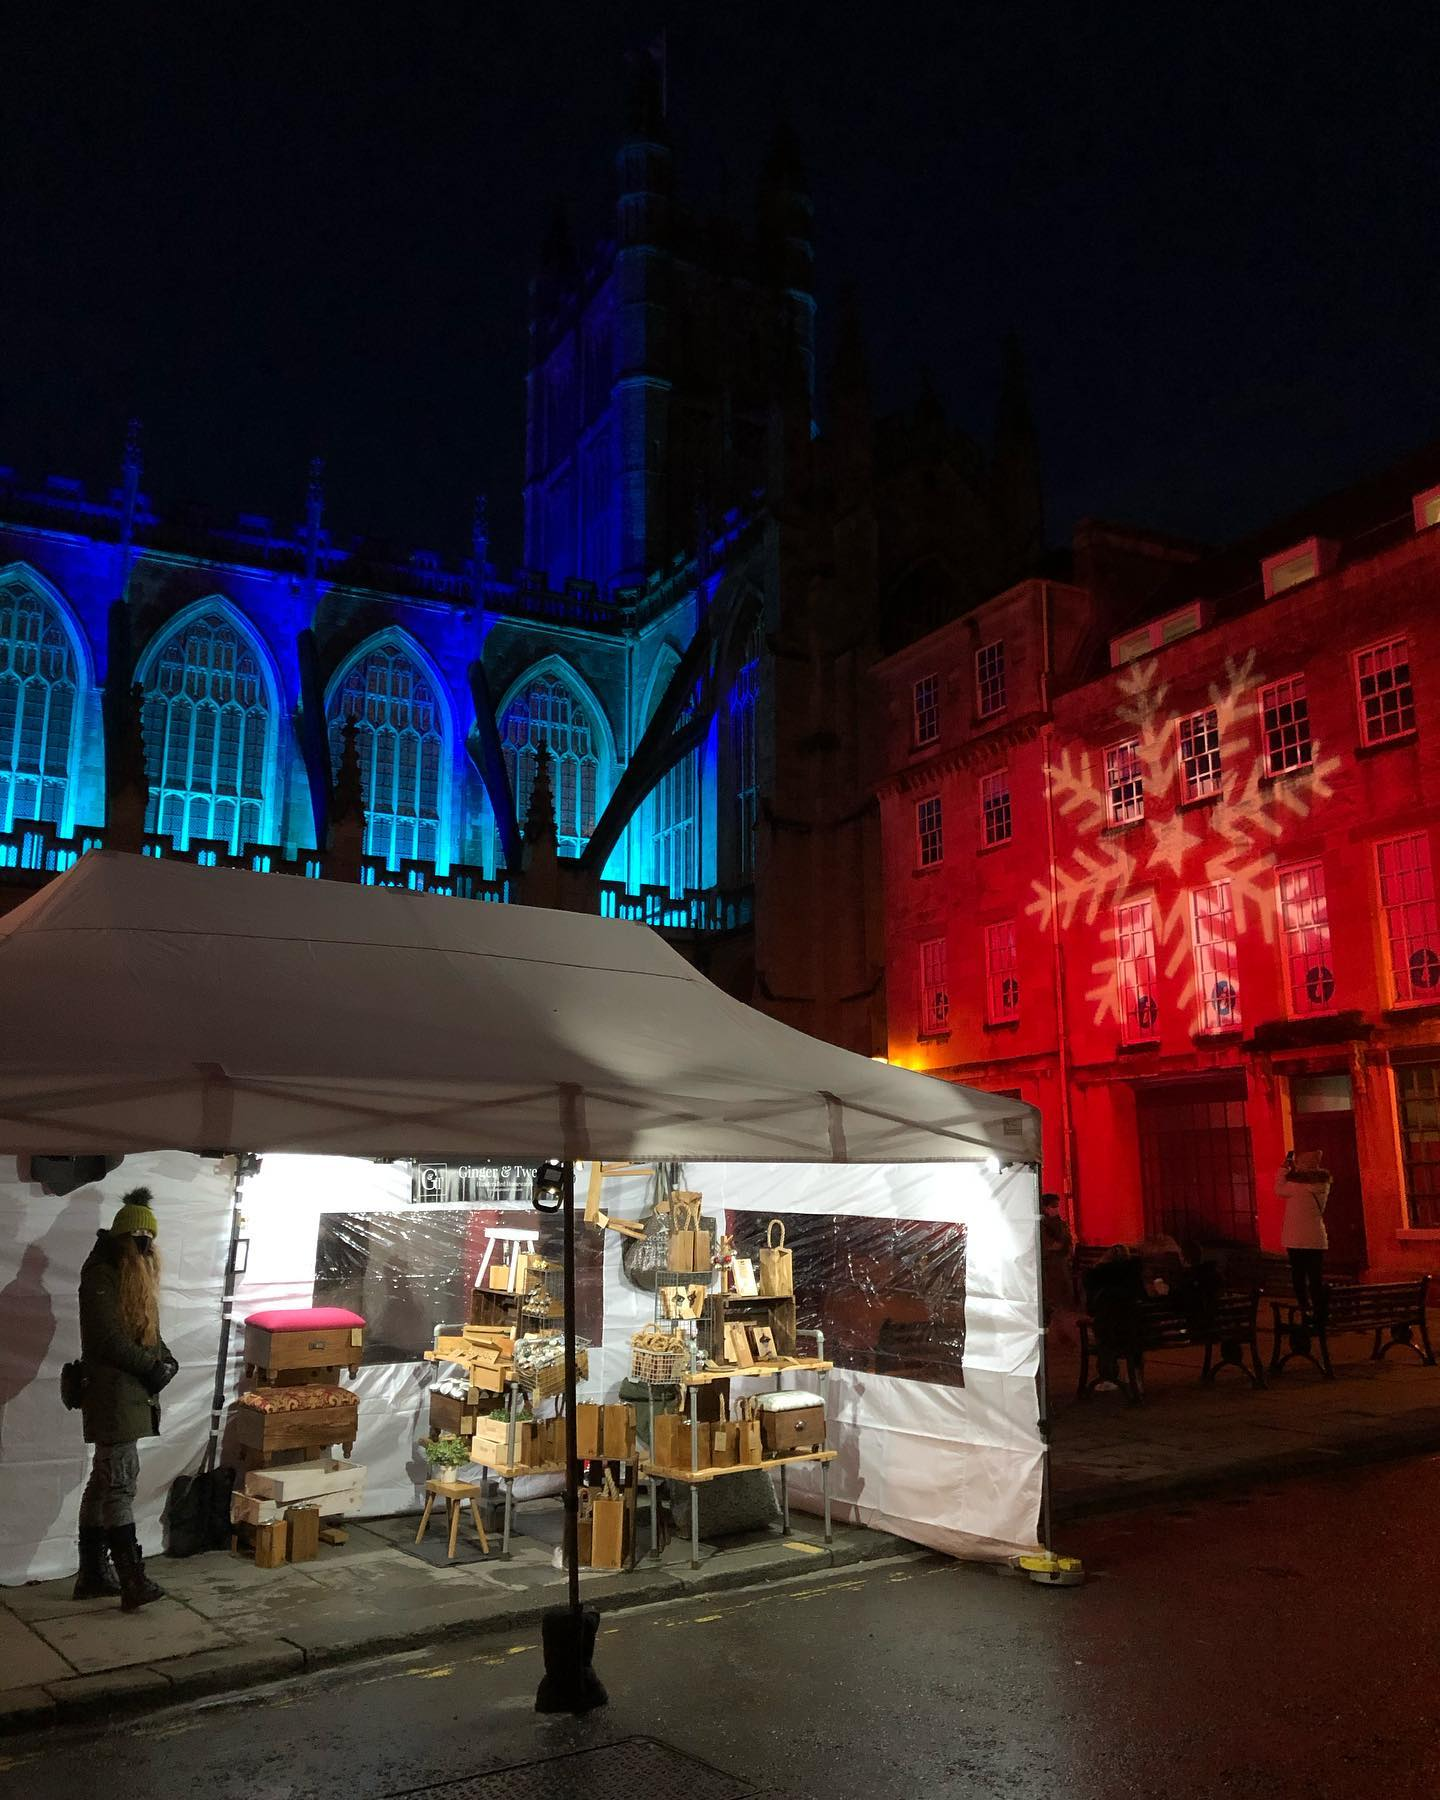 Thank you to everyone who visited our little market today! See you there again next weekend! @abbeyquartermarket ..#christmasmarket #festivemarket #shopsmall #shophandmadeuk #bath #somerset #bathatchristmas #handcrafted #homewares